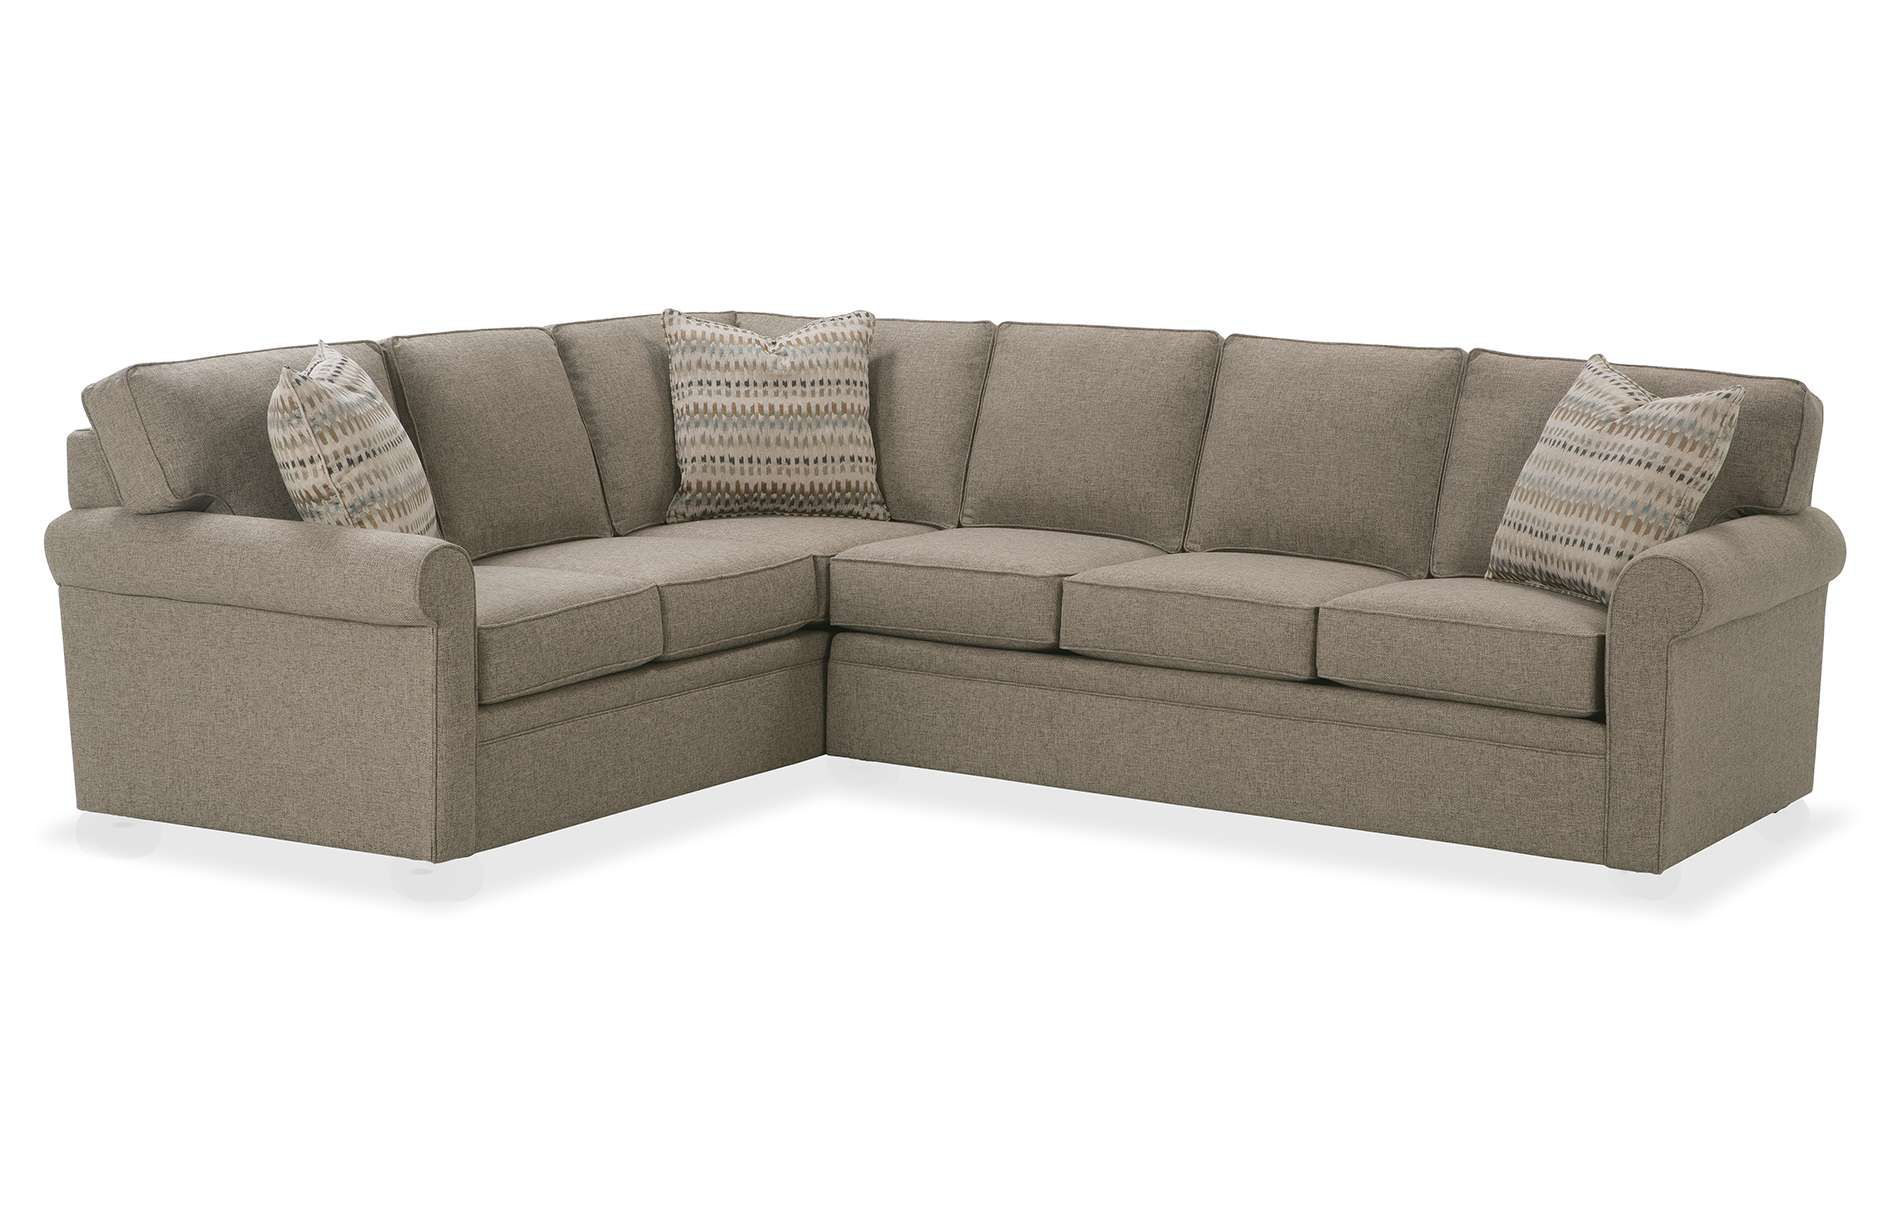 94 X 94 3 Pieces 40 Deep The Brentwood Sectional From Rowe